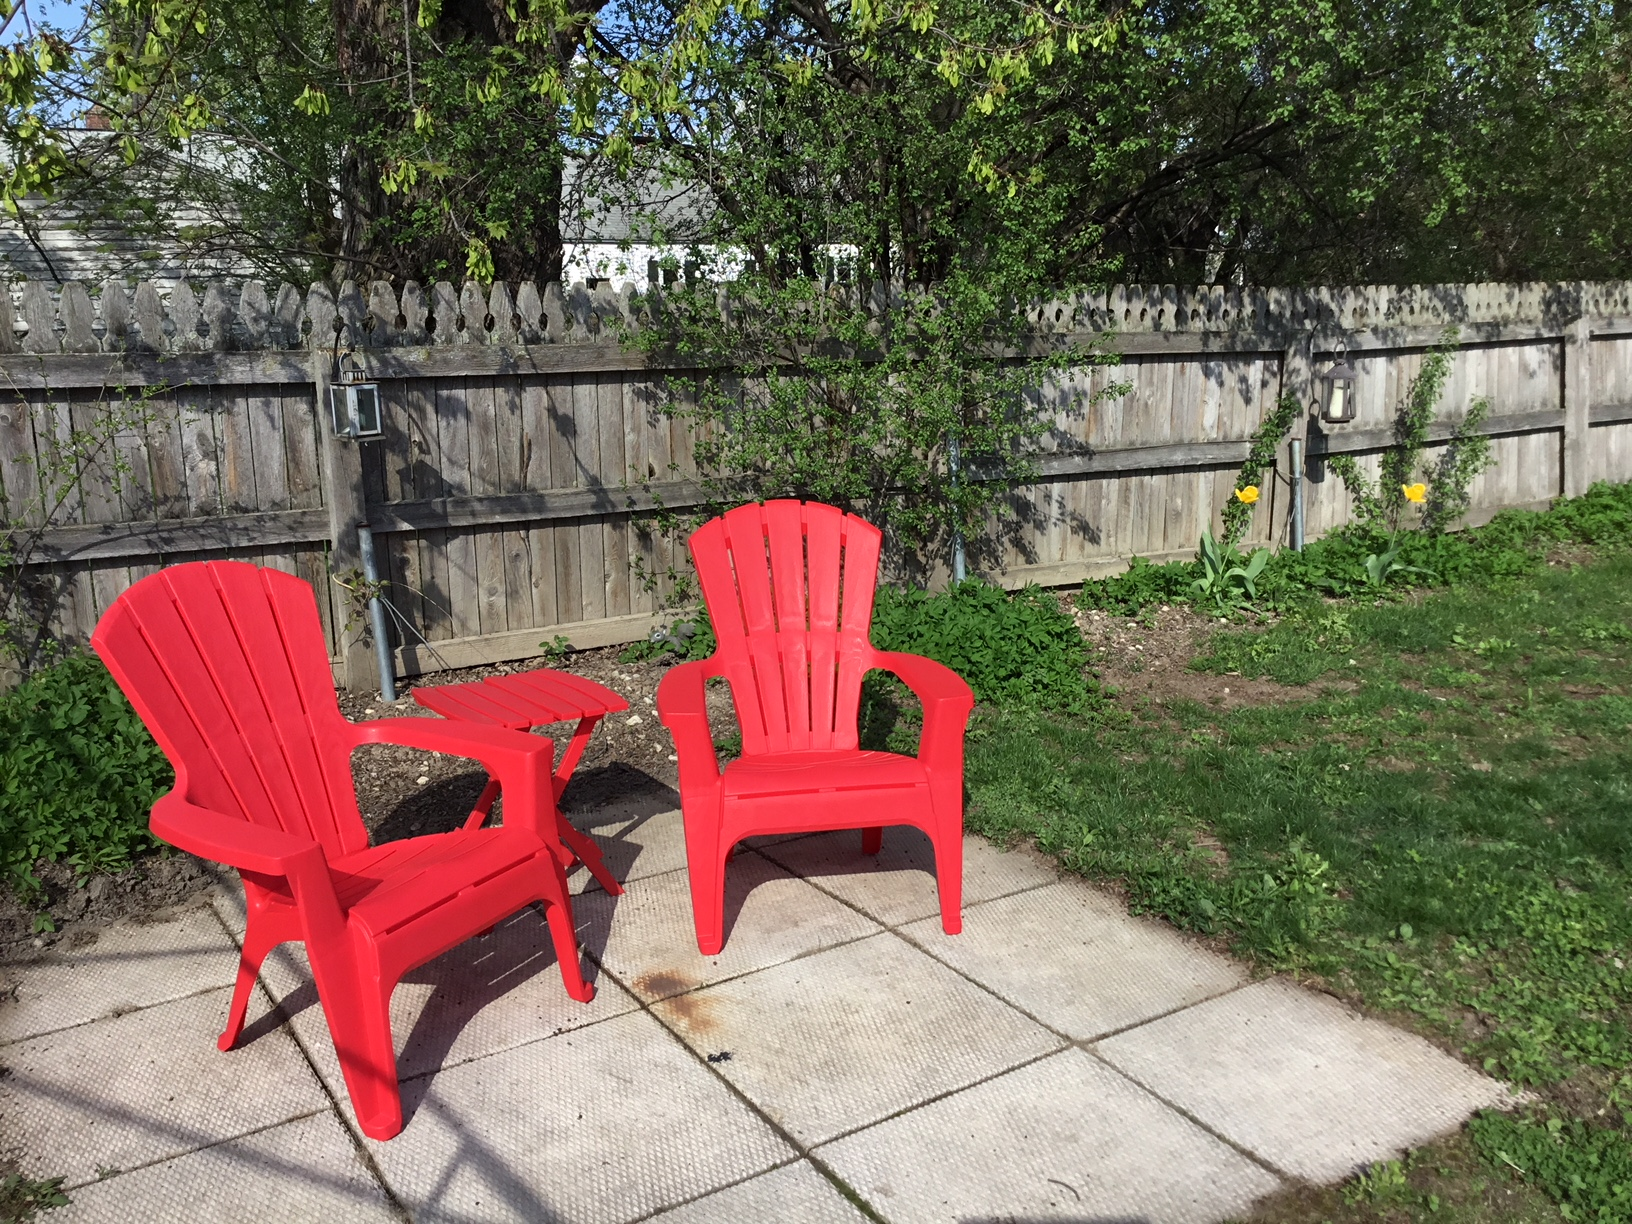 One More Chance For The Plastic Red Adirondack Chairs